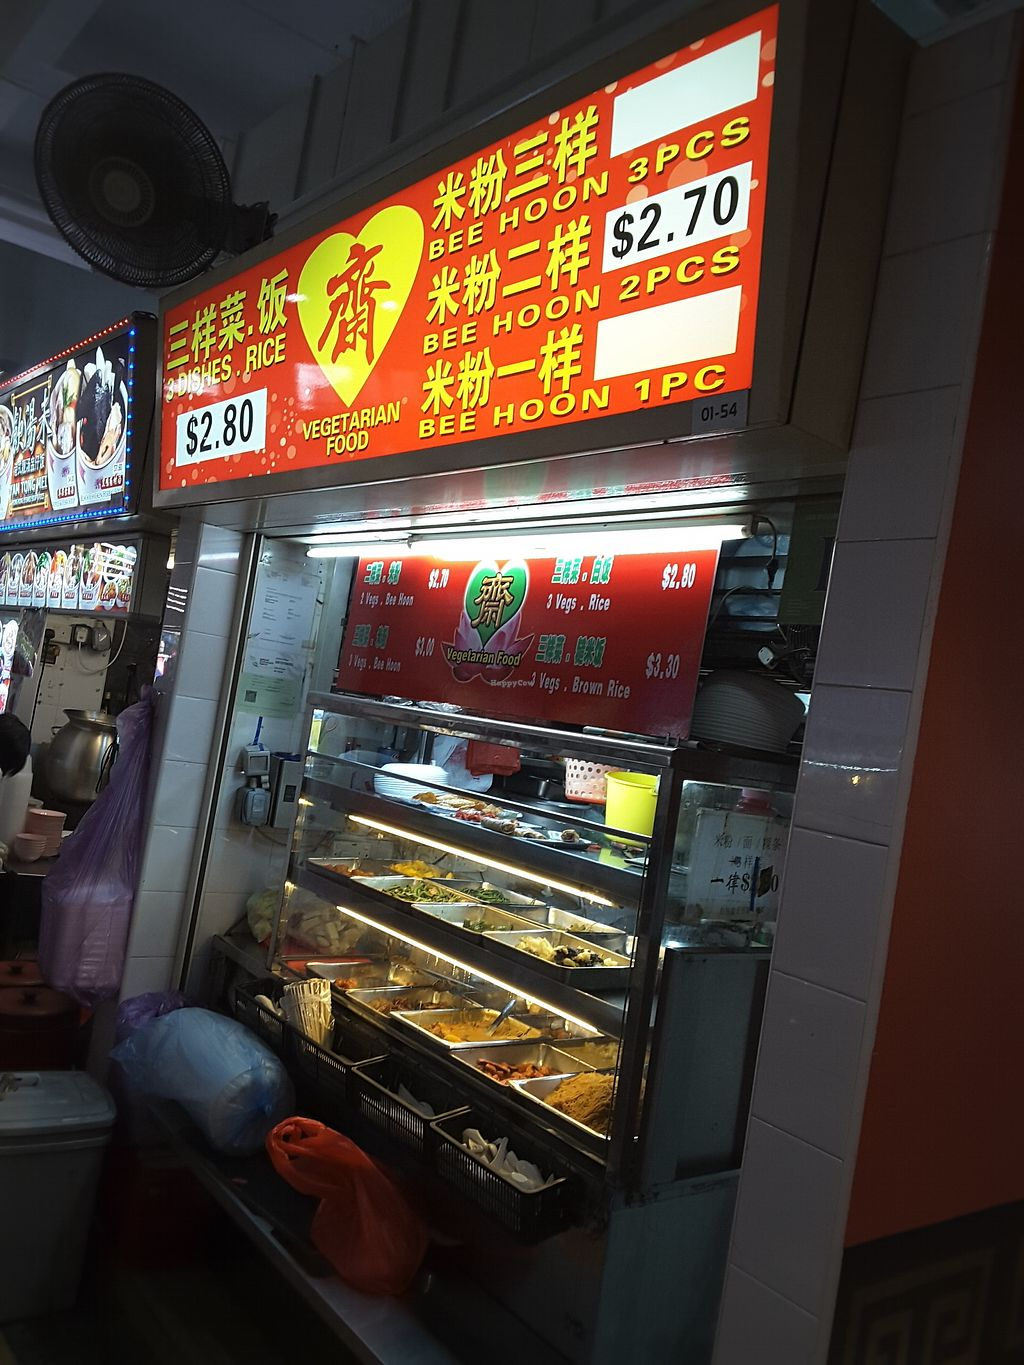 Photo of Albert Center Food Stall 54  by linrx <br/>Stall is still operational in 2017 <br/> September 4, 2017  - <a href='/contact/abuse/image/71524/300727'>Report</a>